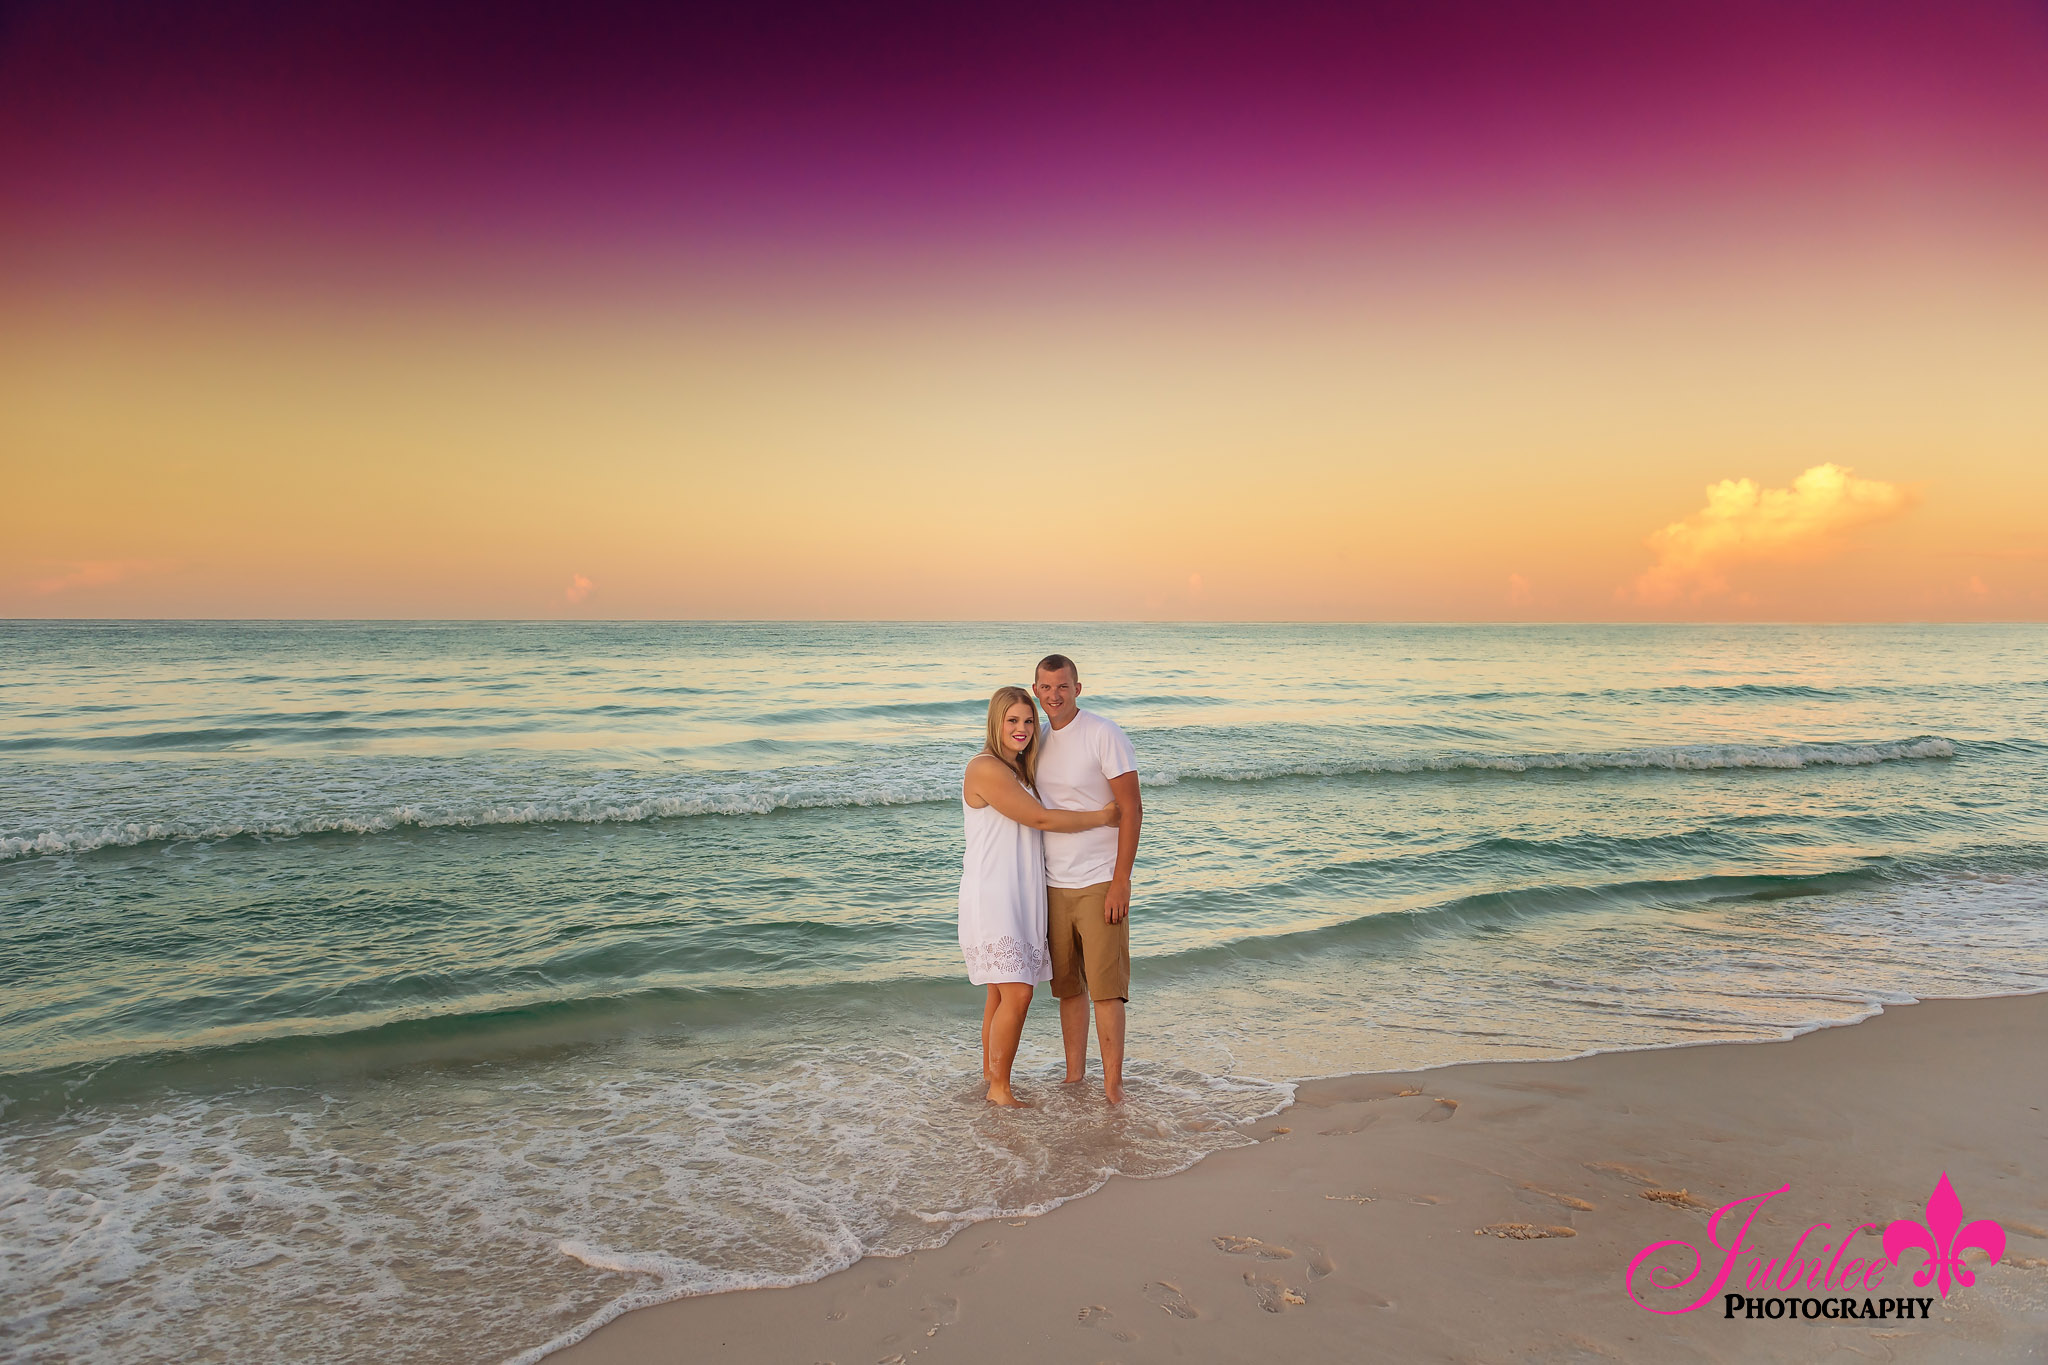 Destin_Sunrise_Photographer_0863